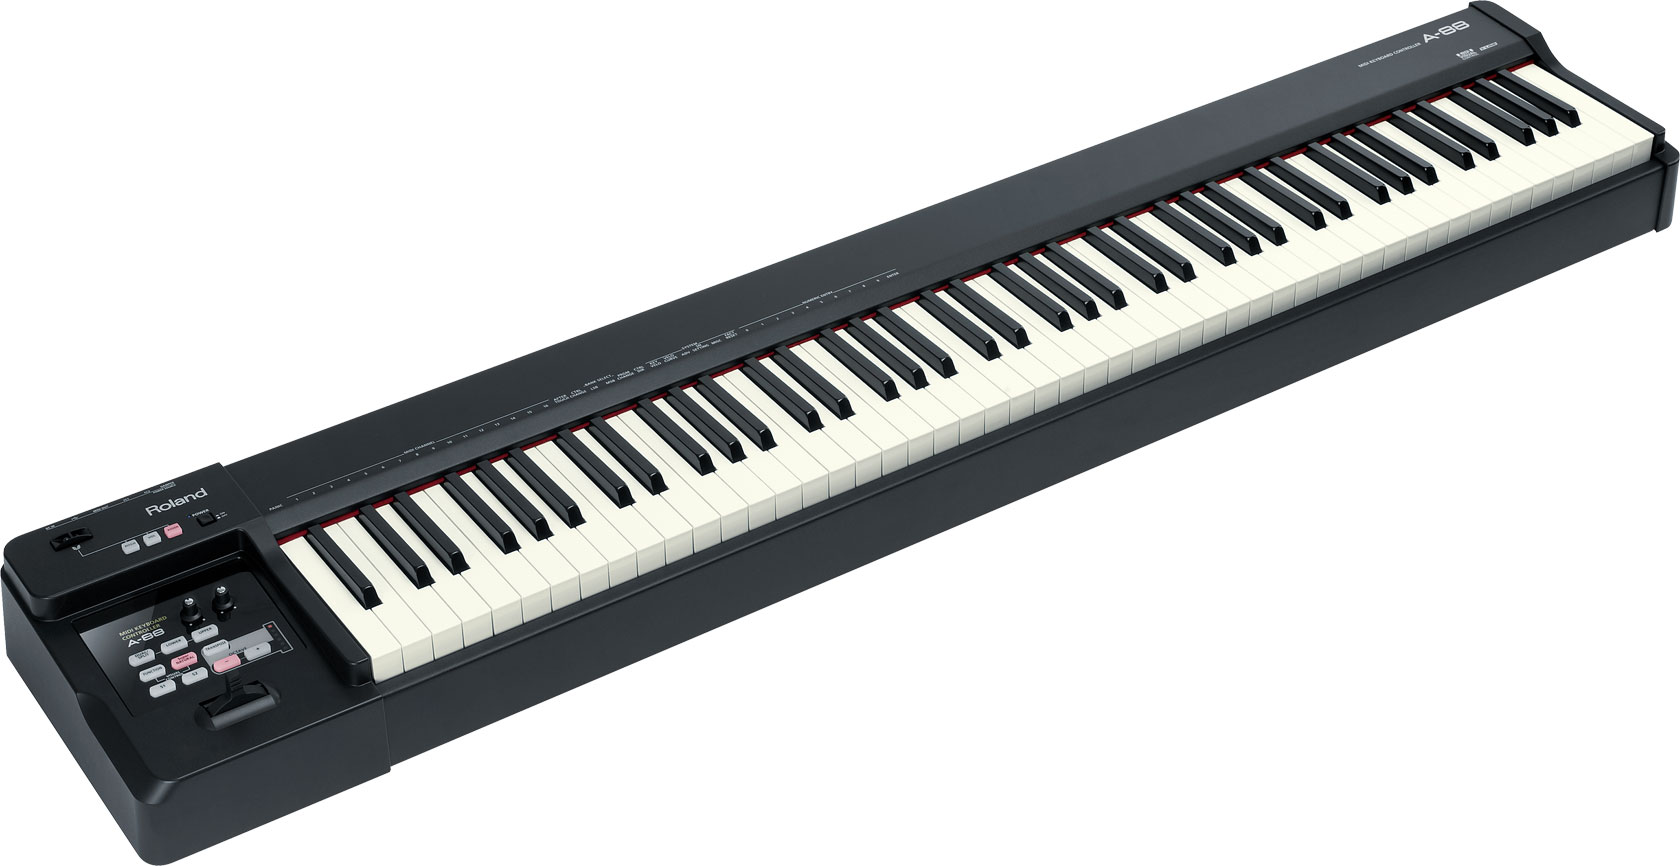 roland a 88 midi keyboard controller. Black Bedroom Furniture Sets. Home Design Ideas